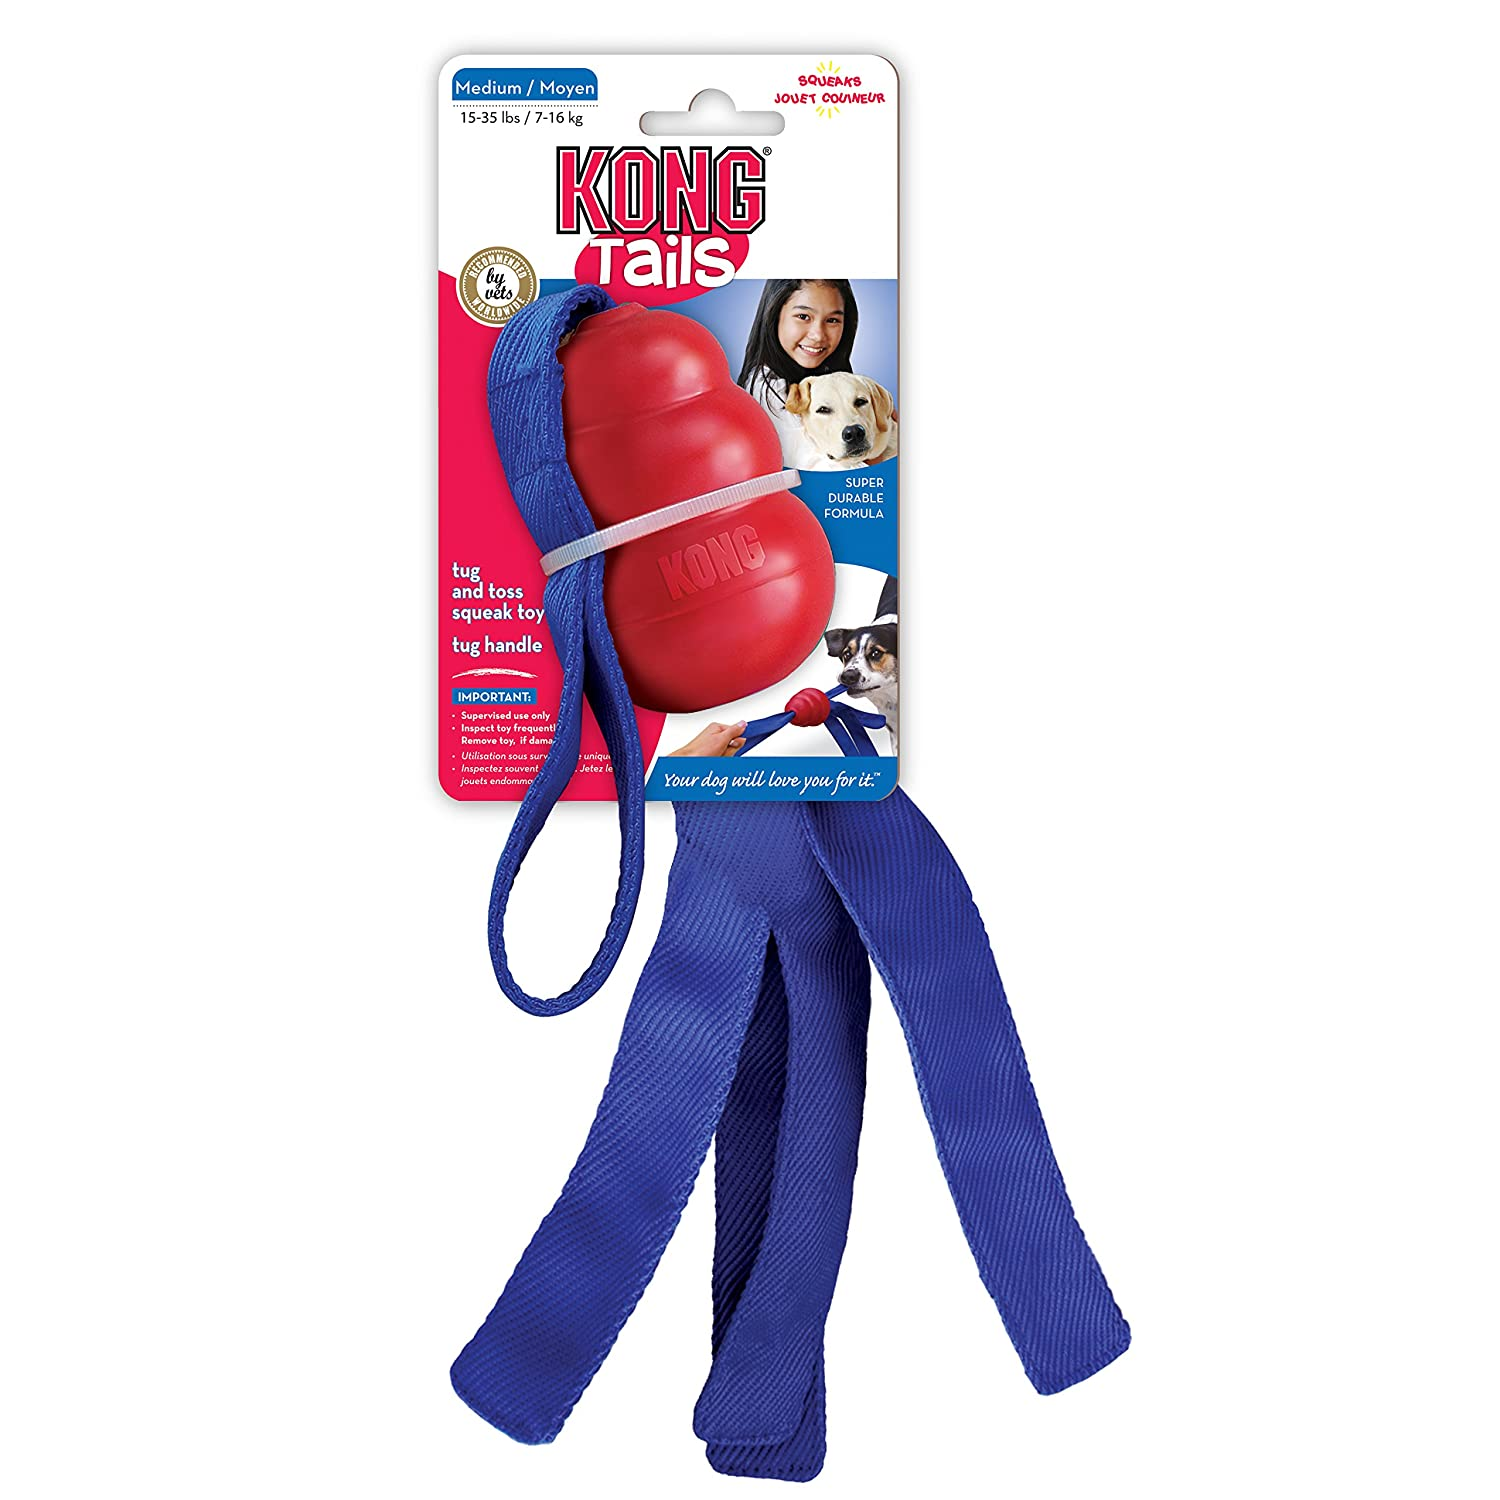 Kong 0035585112008 - Tails large red KT1